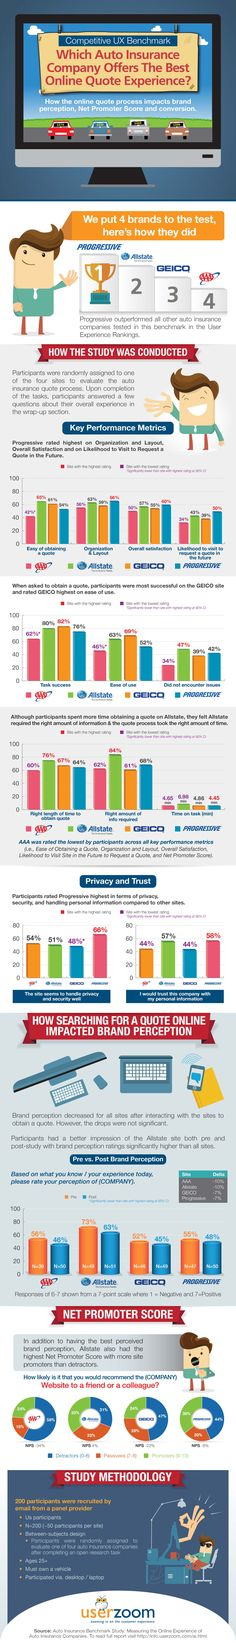 This is an infographic that discusses the fact as to which auto insurance company offers the best online quote experience that in turn has an impact on the conversion, brand perception, and Net Promoter Score. It puts four brands to test, discusses how the study was conducted and evaluates key performances metrics and privacy and trust. The study methodology is also mentioned below for a better understanding of the study. #Marketing #Infobrandz